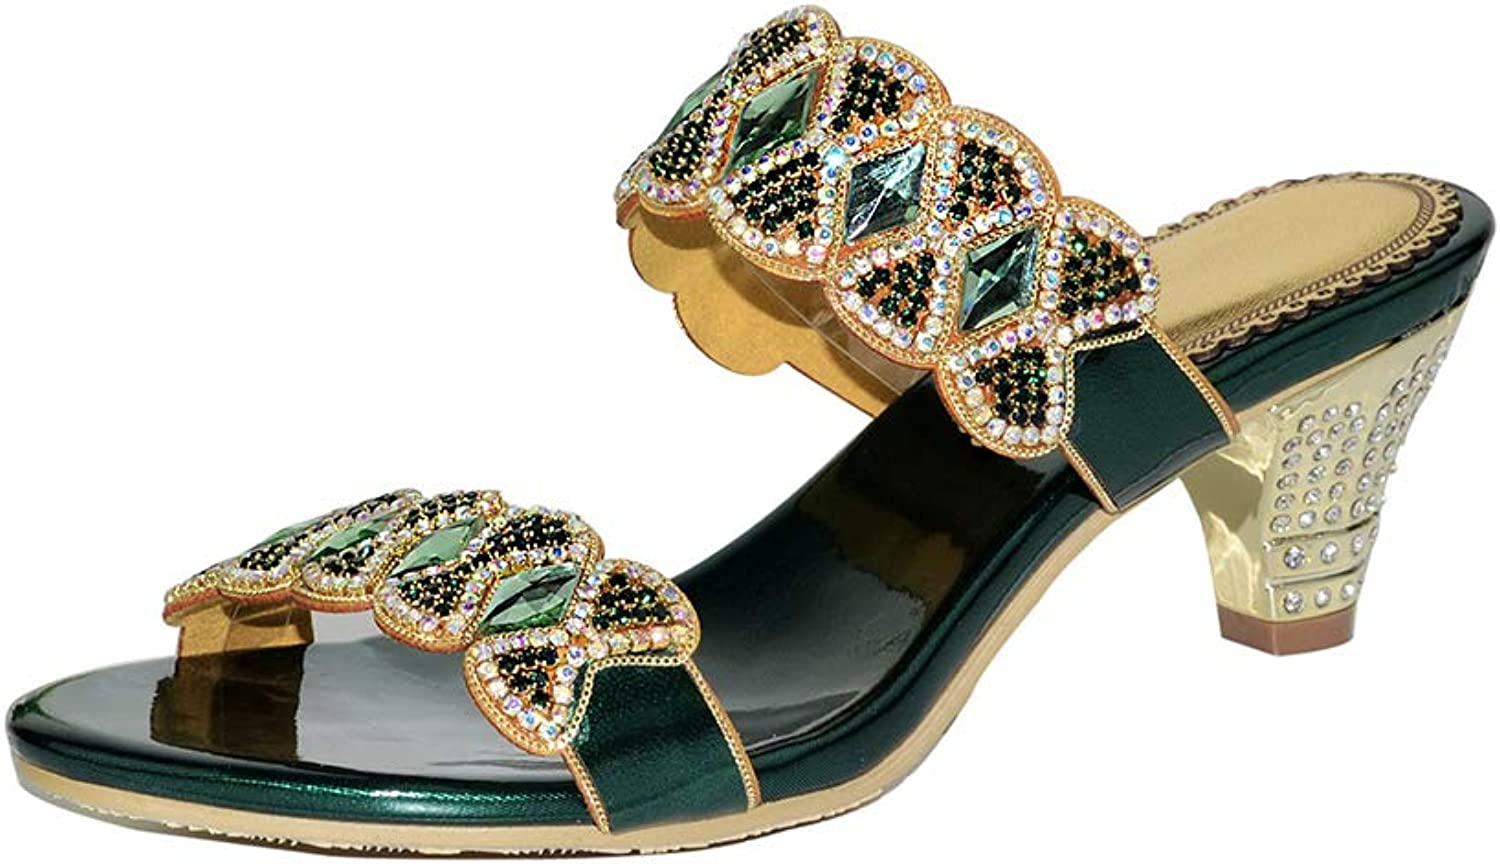 Women's Rome Rhinestone High Heel Sandals Fashion Hollow Wedge Slippers Summer Beach Slippers